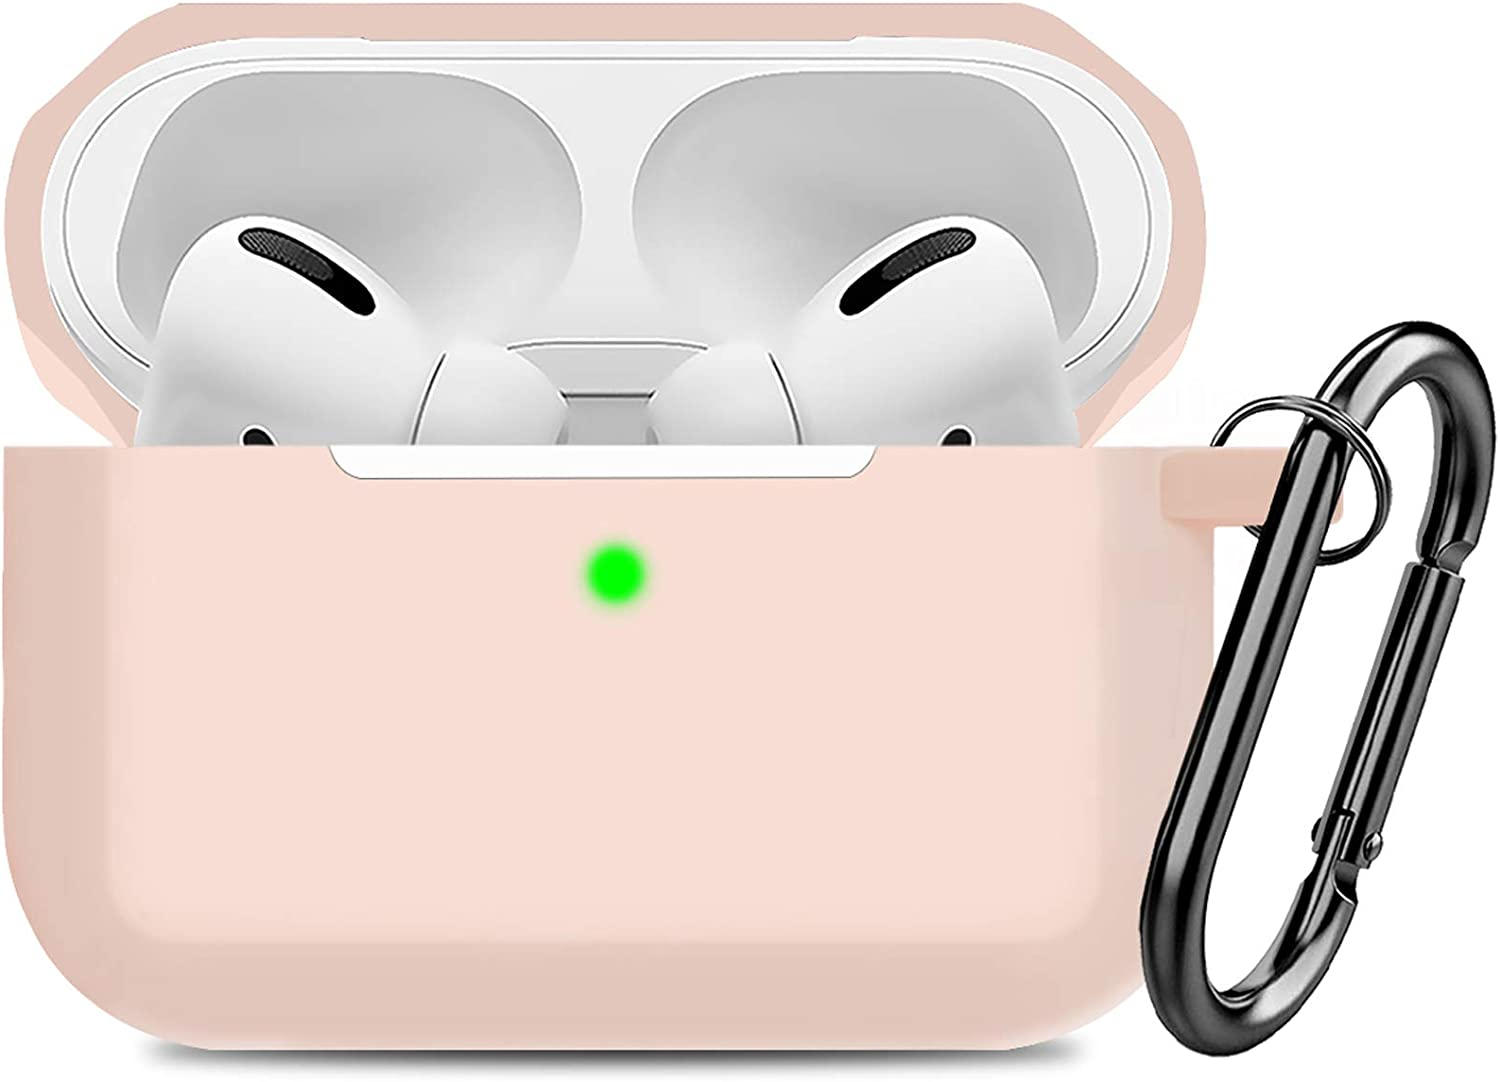 Compatible AirPods Pro Case Cover Silicone Protective Case Skin for Apple Airpod Pro 2019 (Front LED Visible) Sand Pink